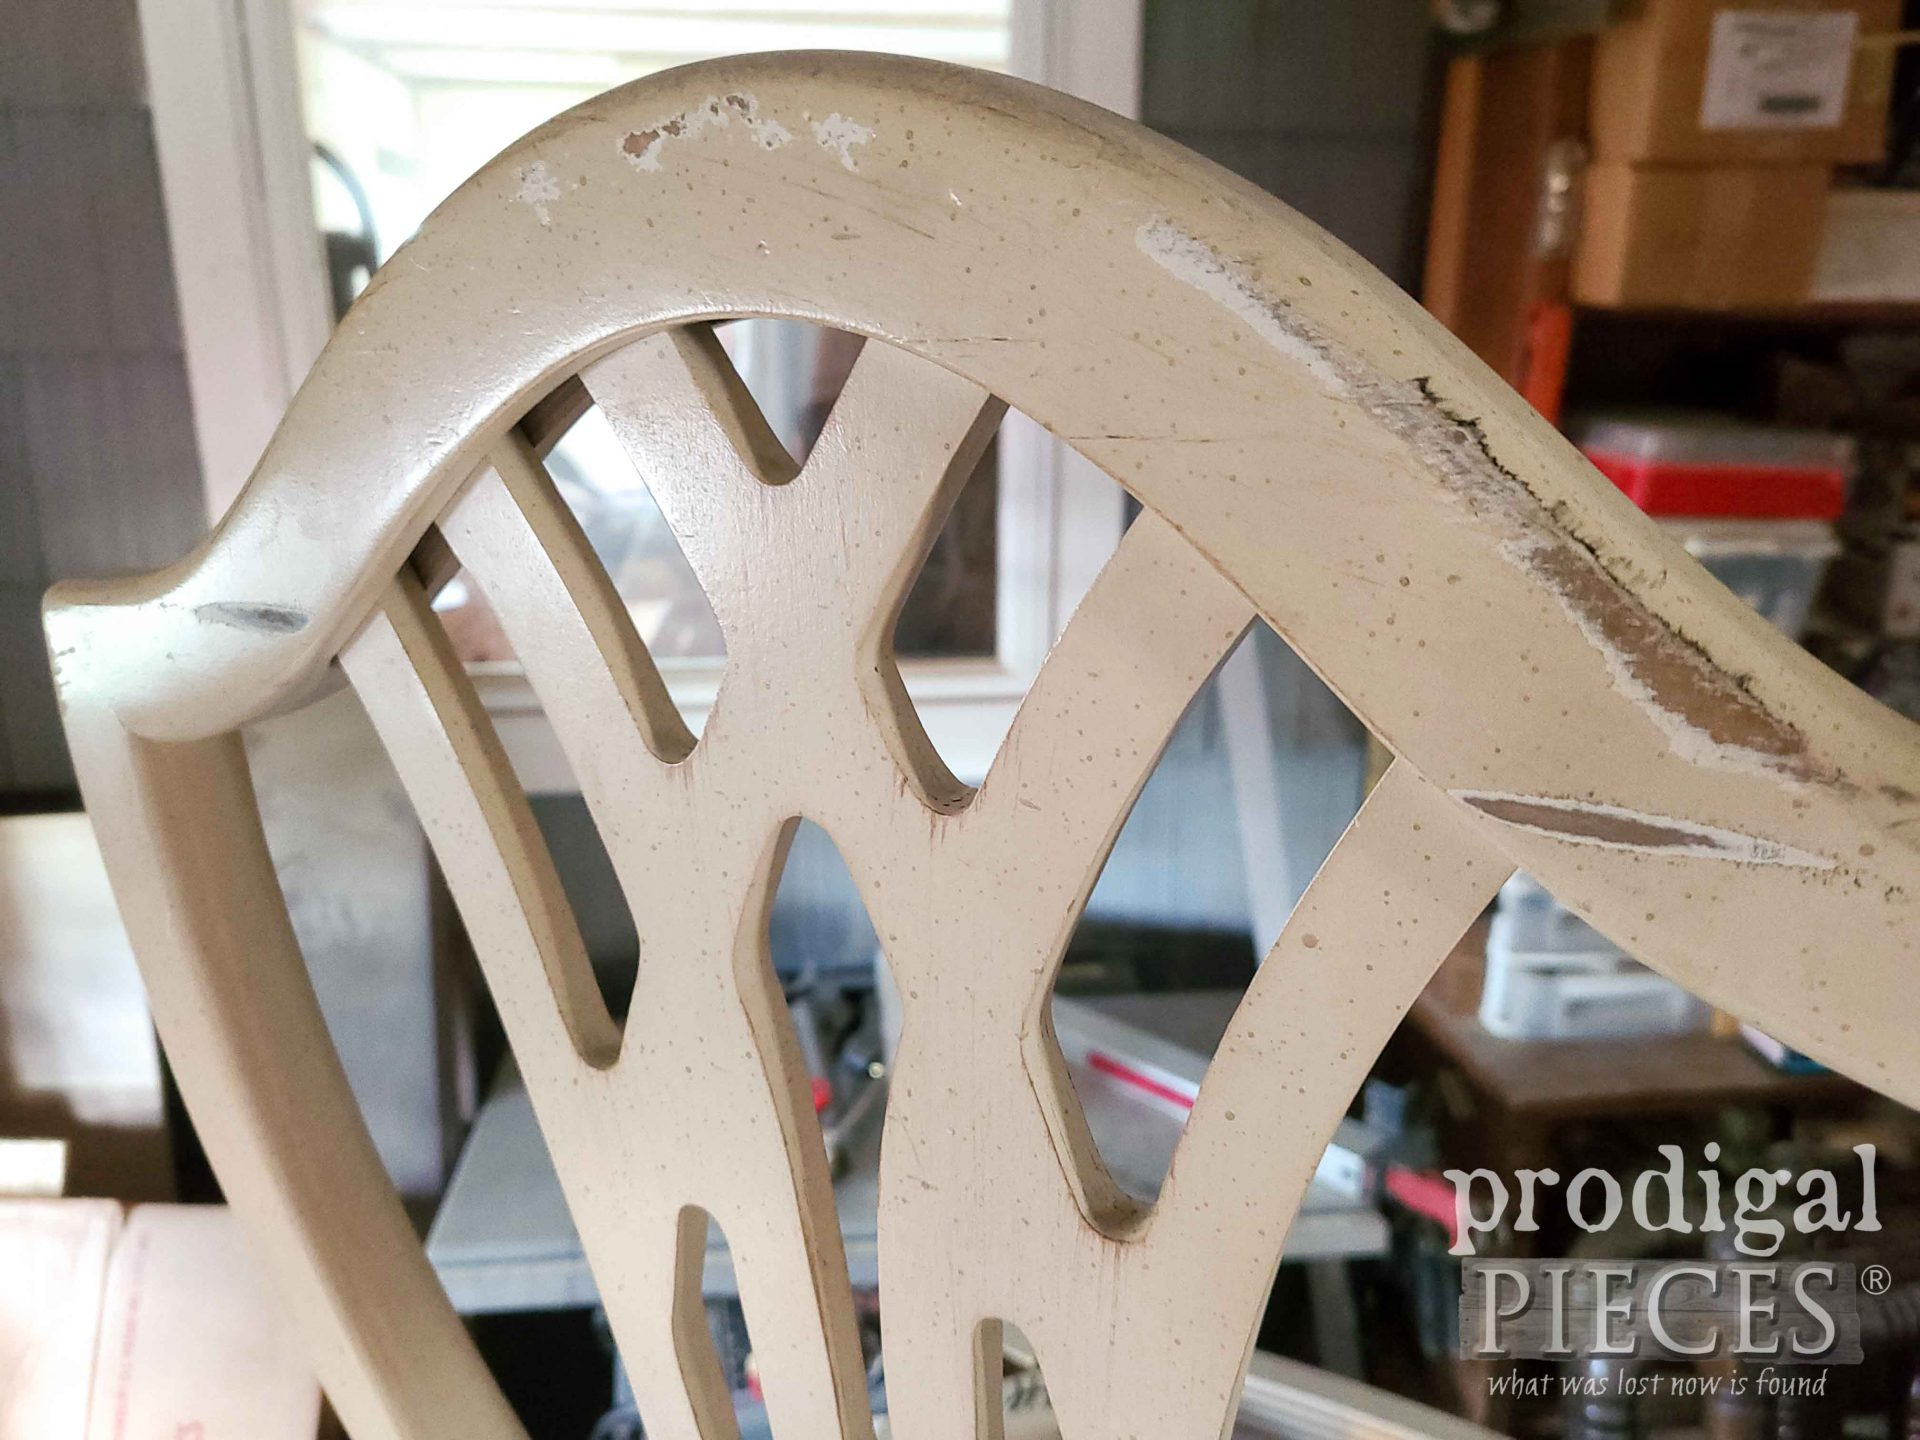 Upholstered Chair Wear and Tear | prodigalpieces.com